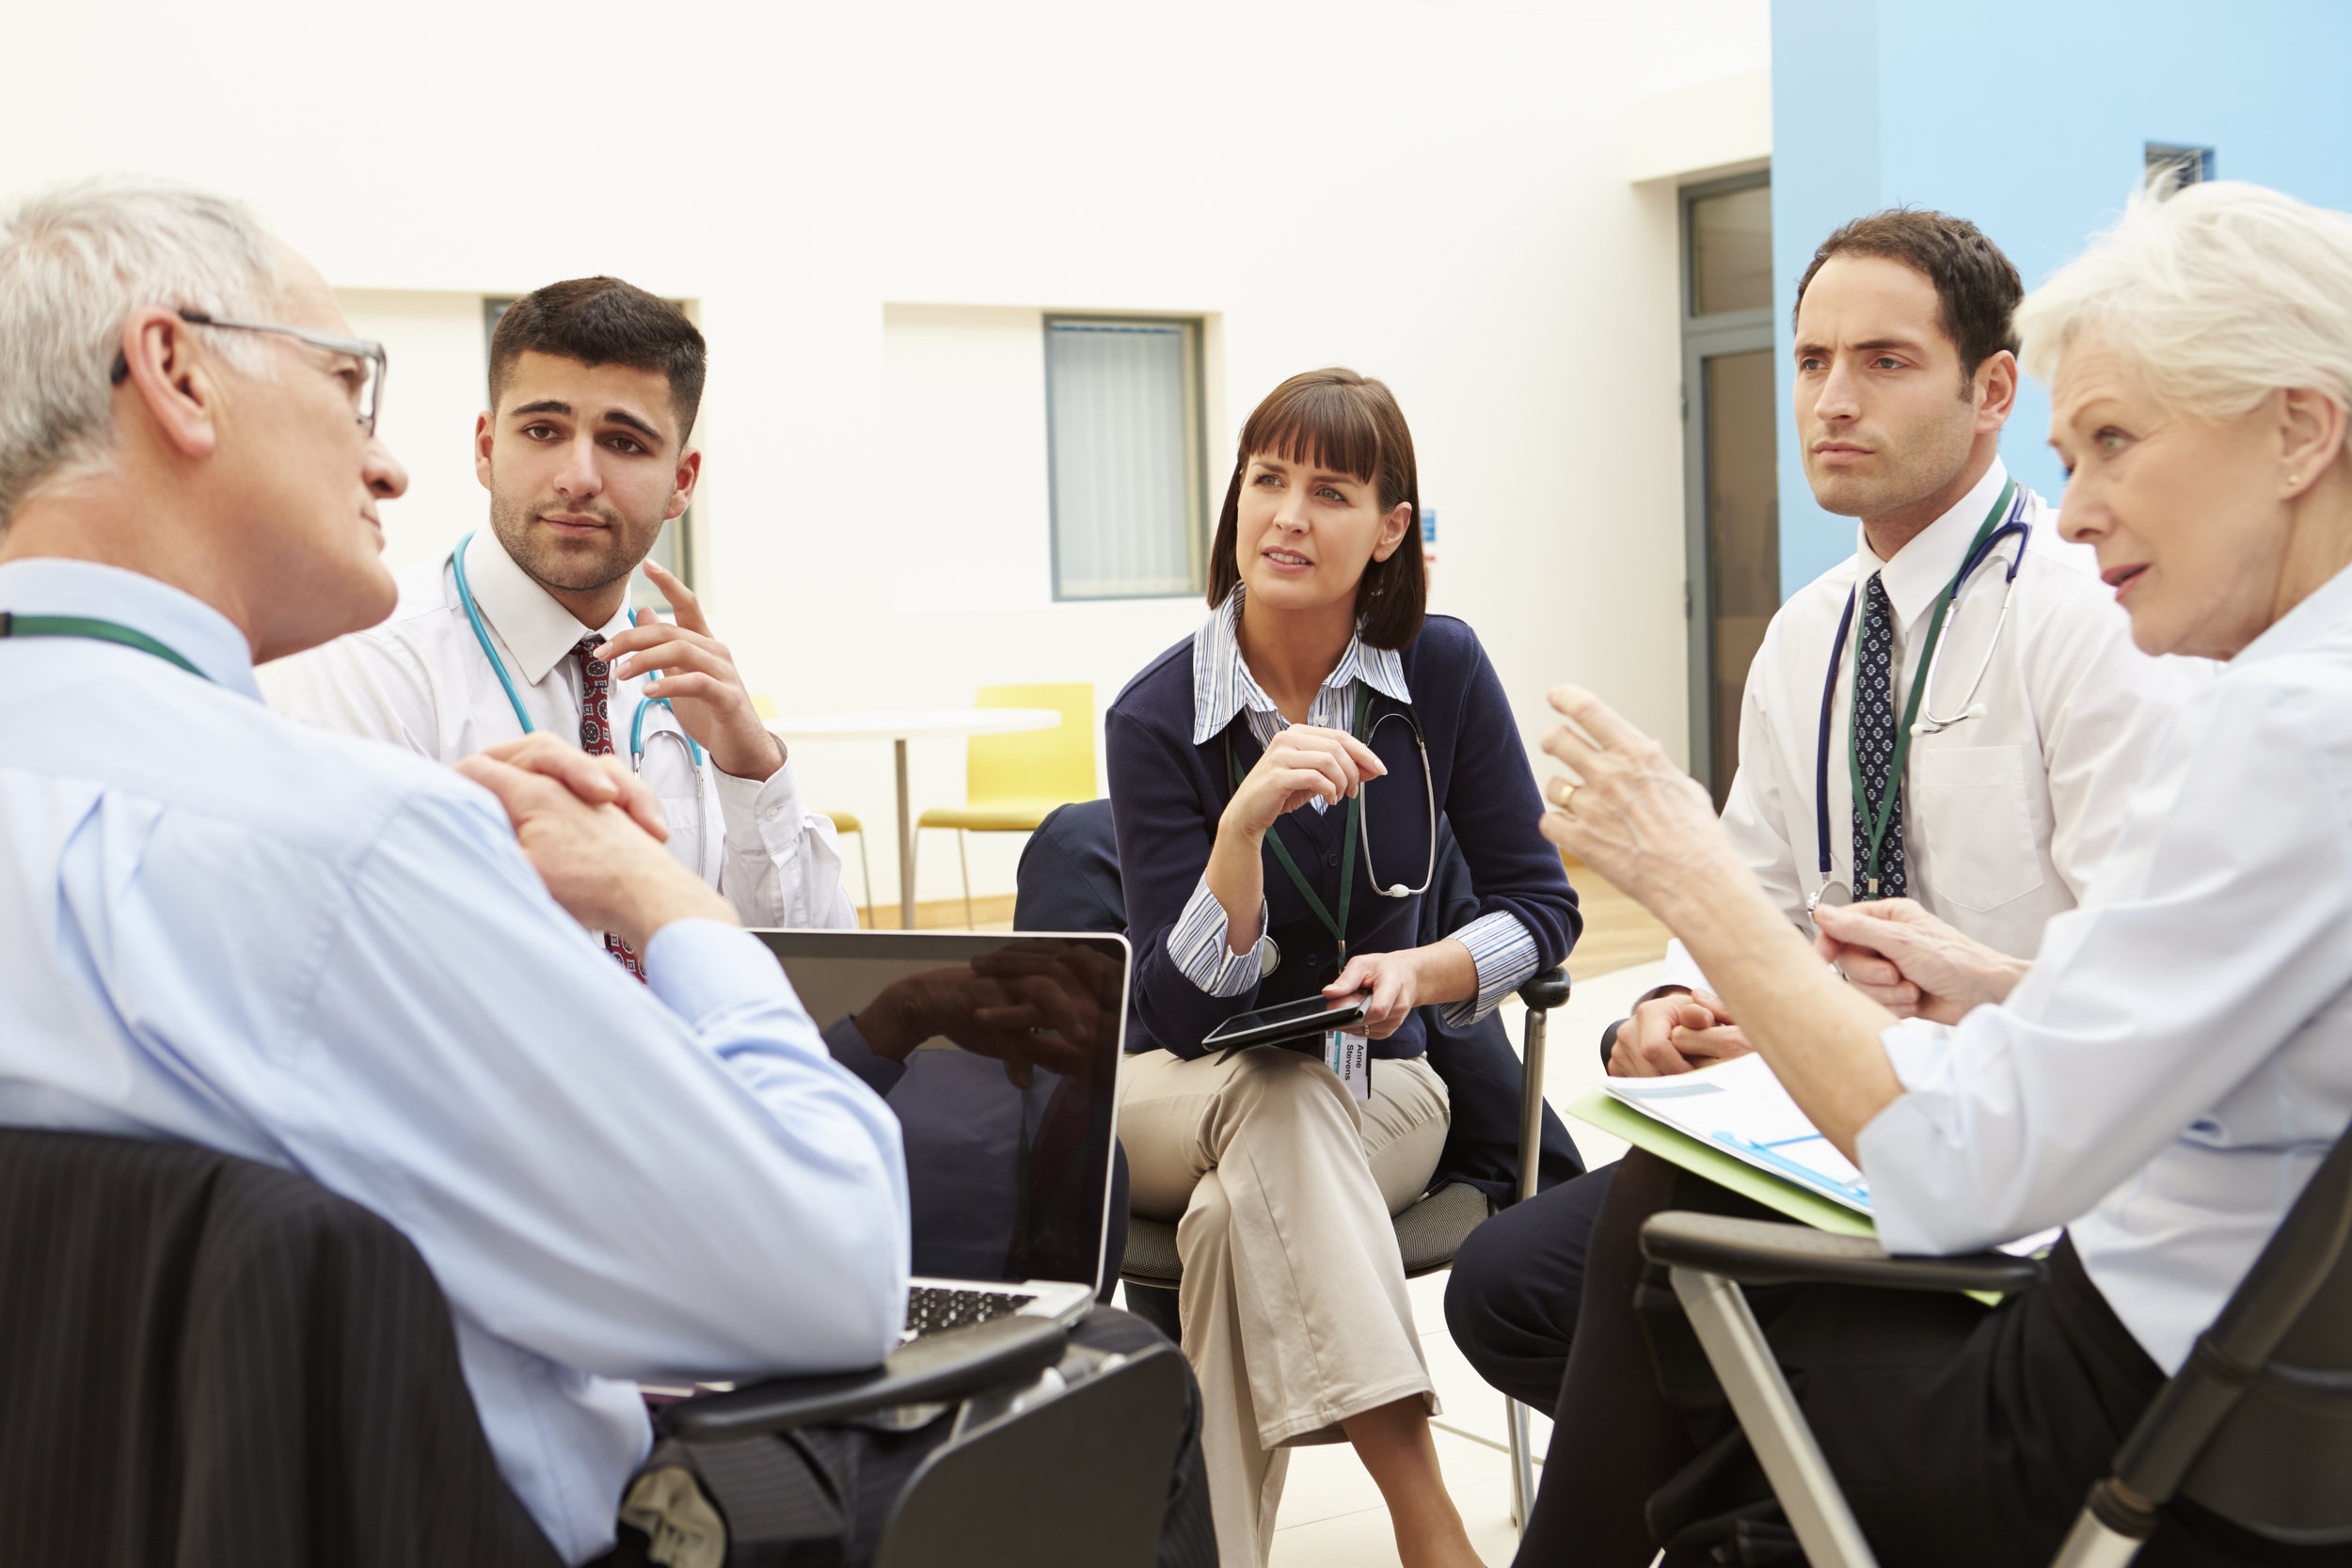 We can help inform your physicians of all of your care providers and ensure a collaborative team approach.